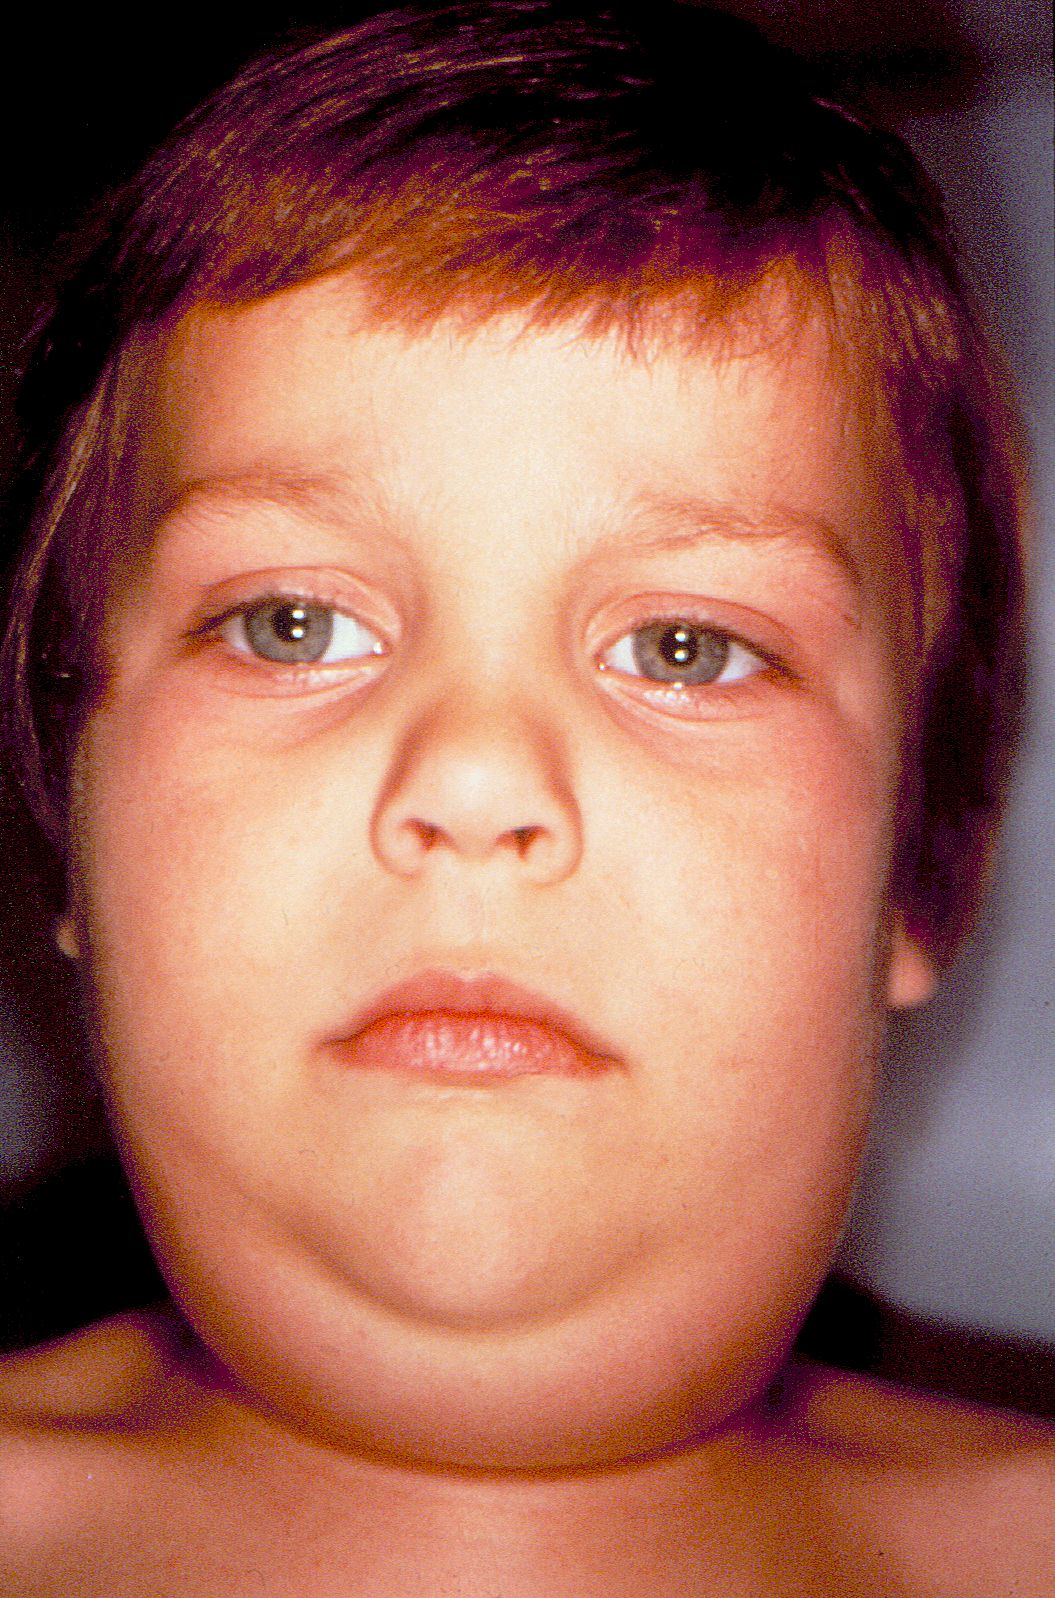 Pictures Of Adults With Mumps 90